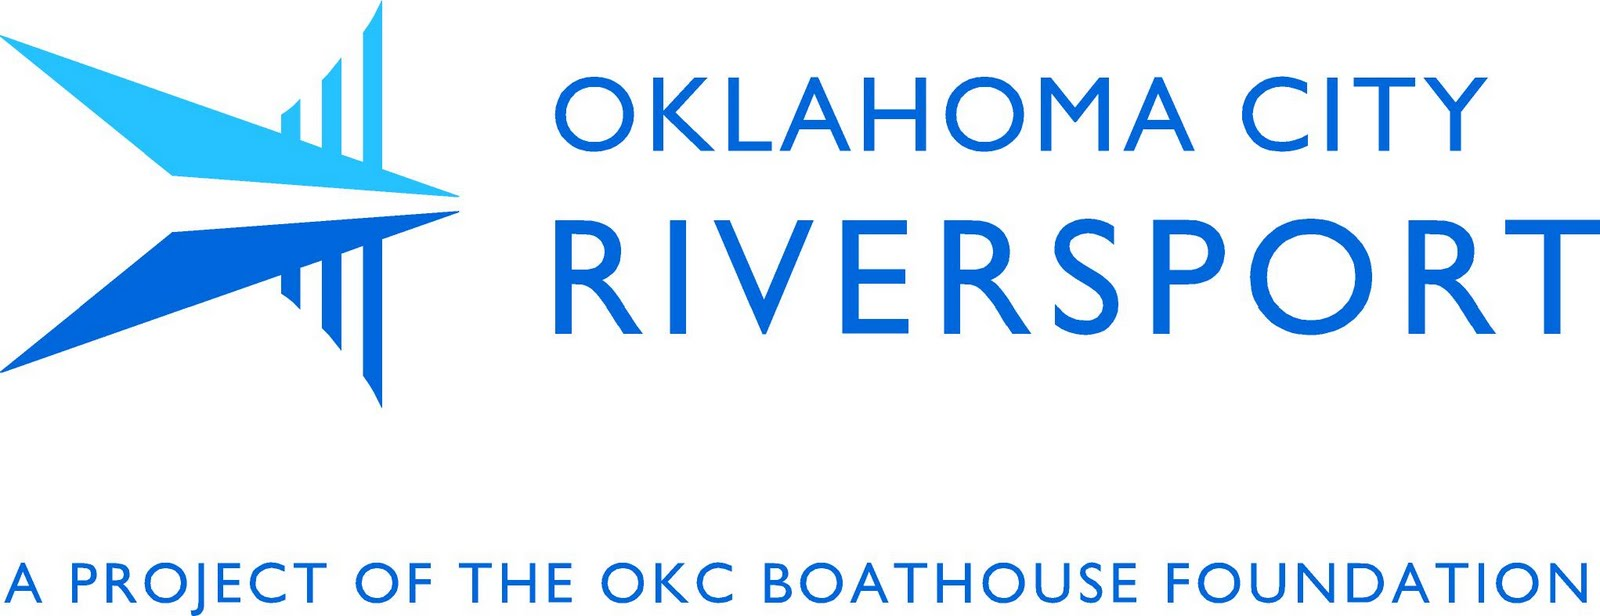 OKC RIVERSPORT